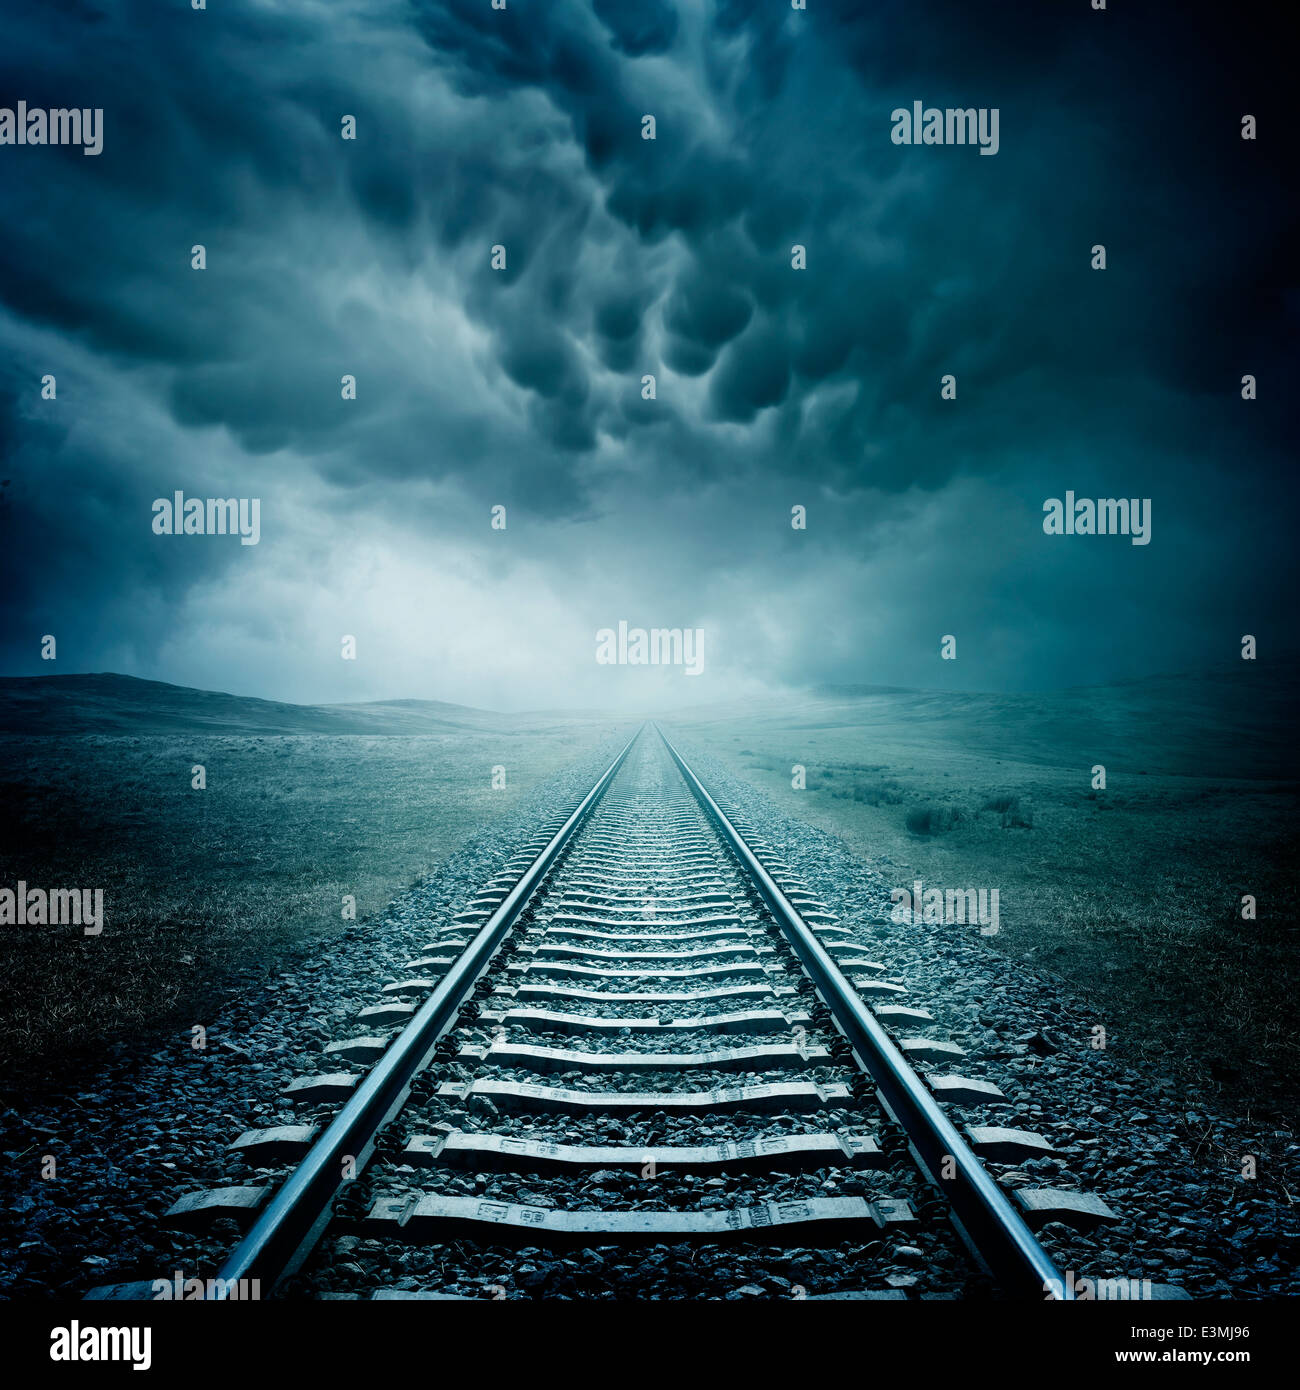 Railway Tracks. A long journey into the unknown... - Stock Image